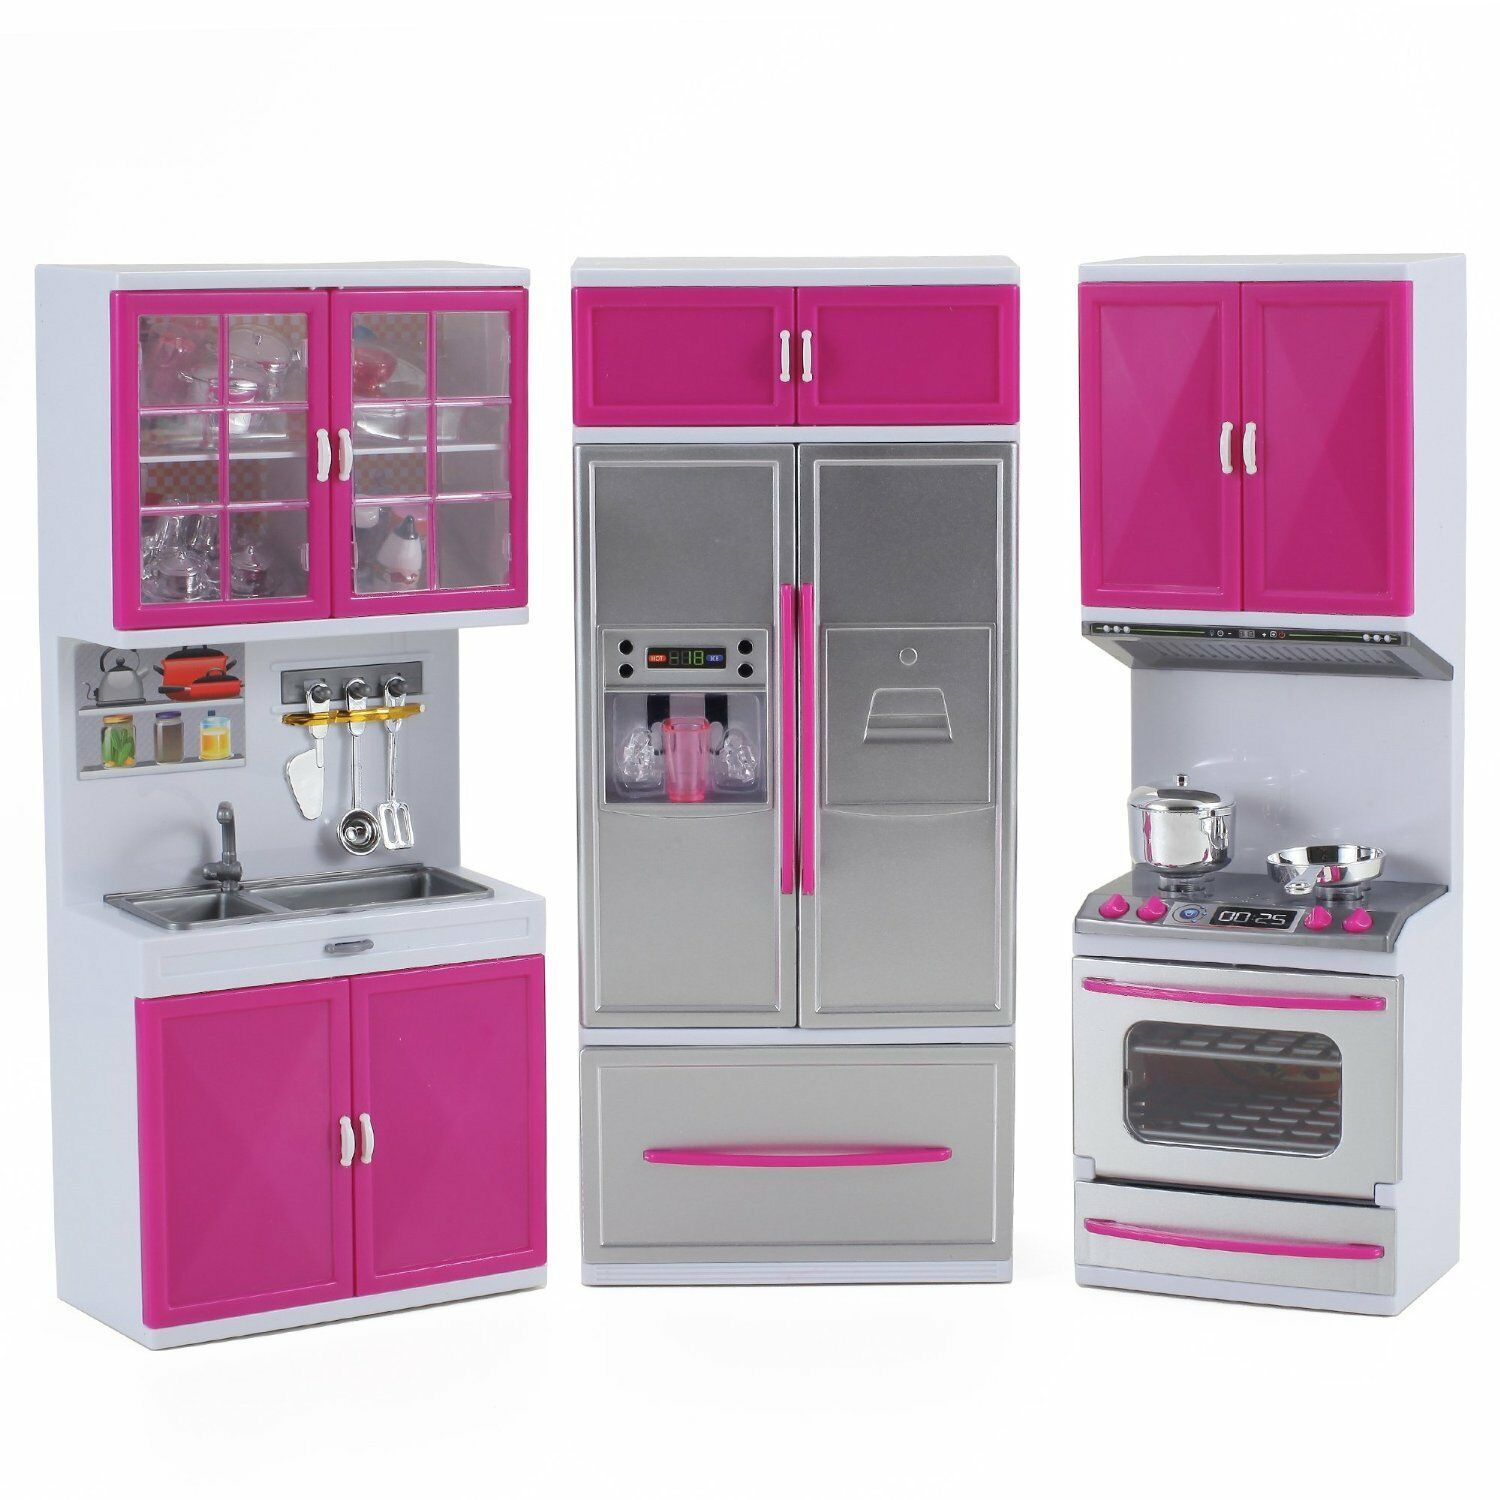 Modern Kitchen Battery Operated My Modern Kitchen Full Deluxe Kit Battery Operated Kitchen